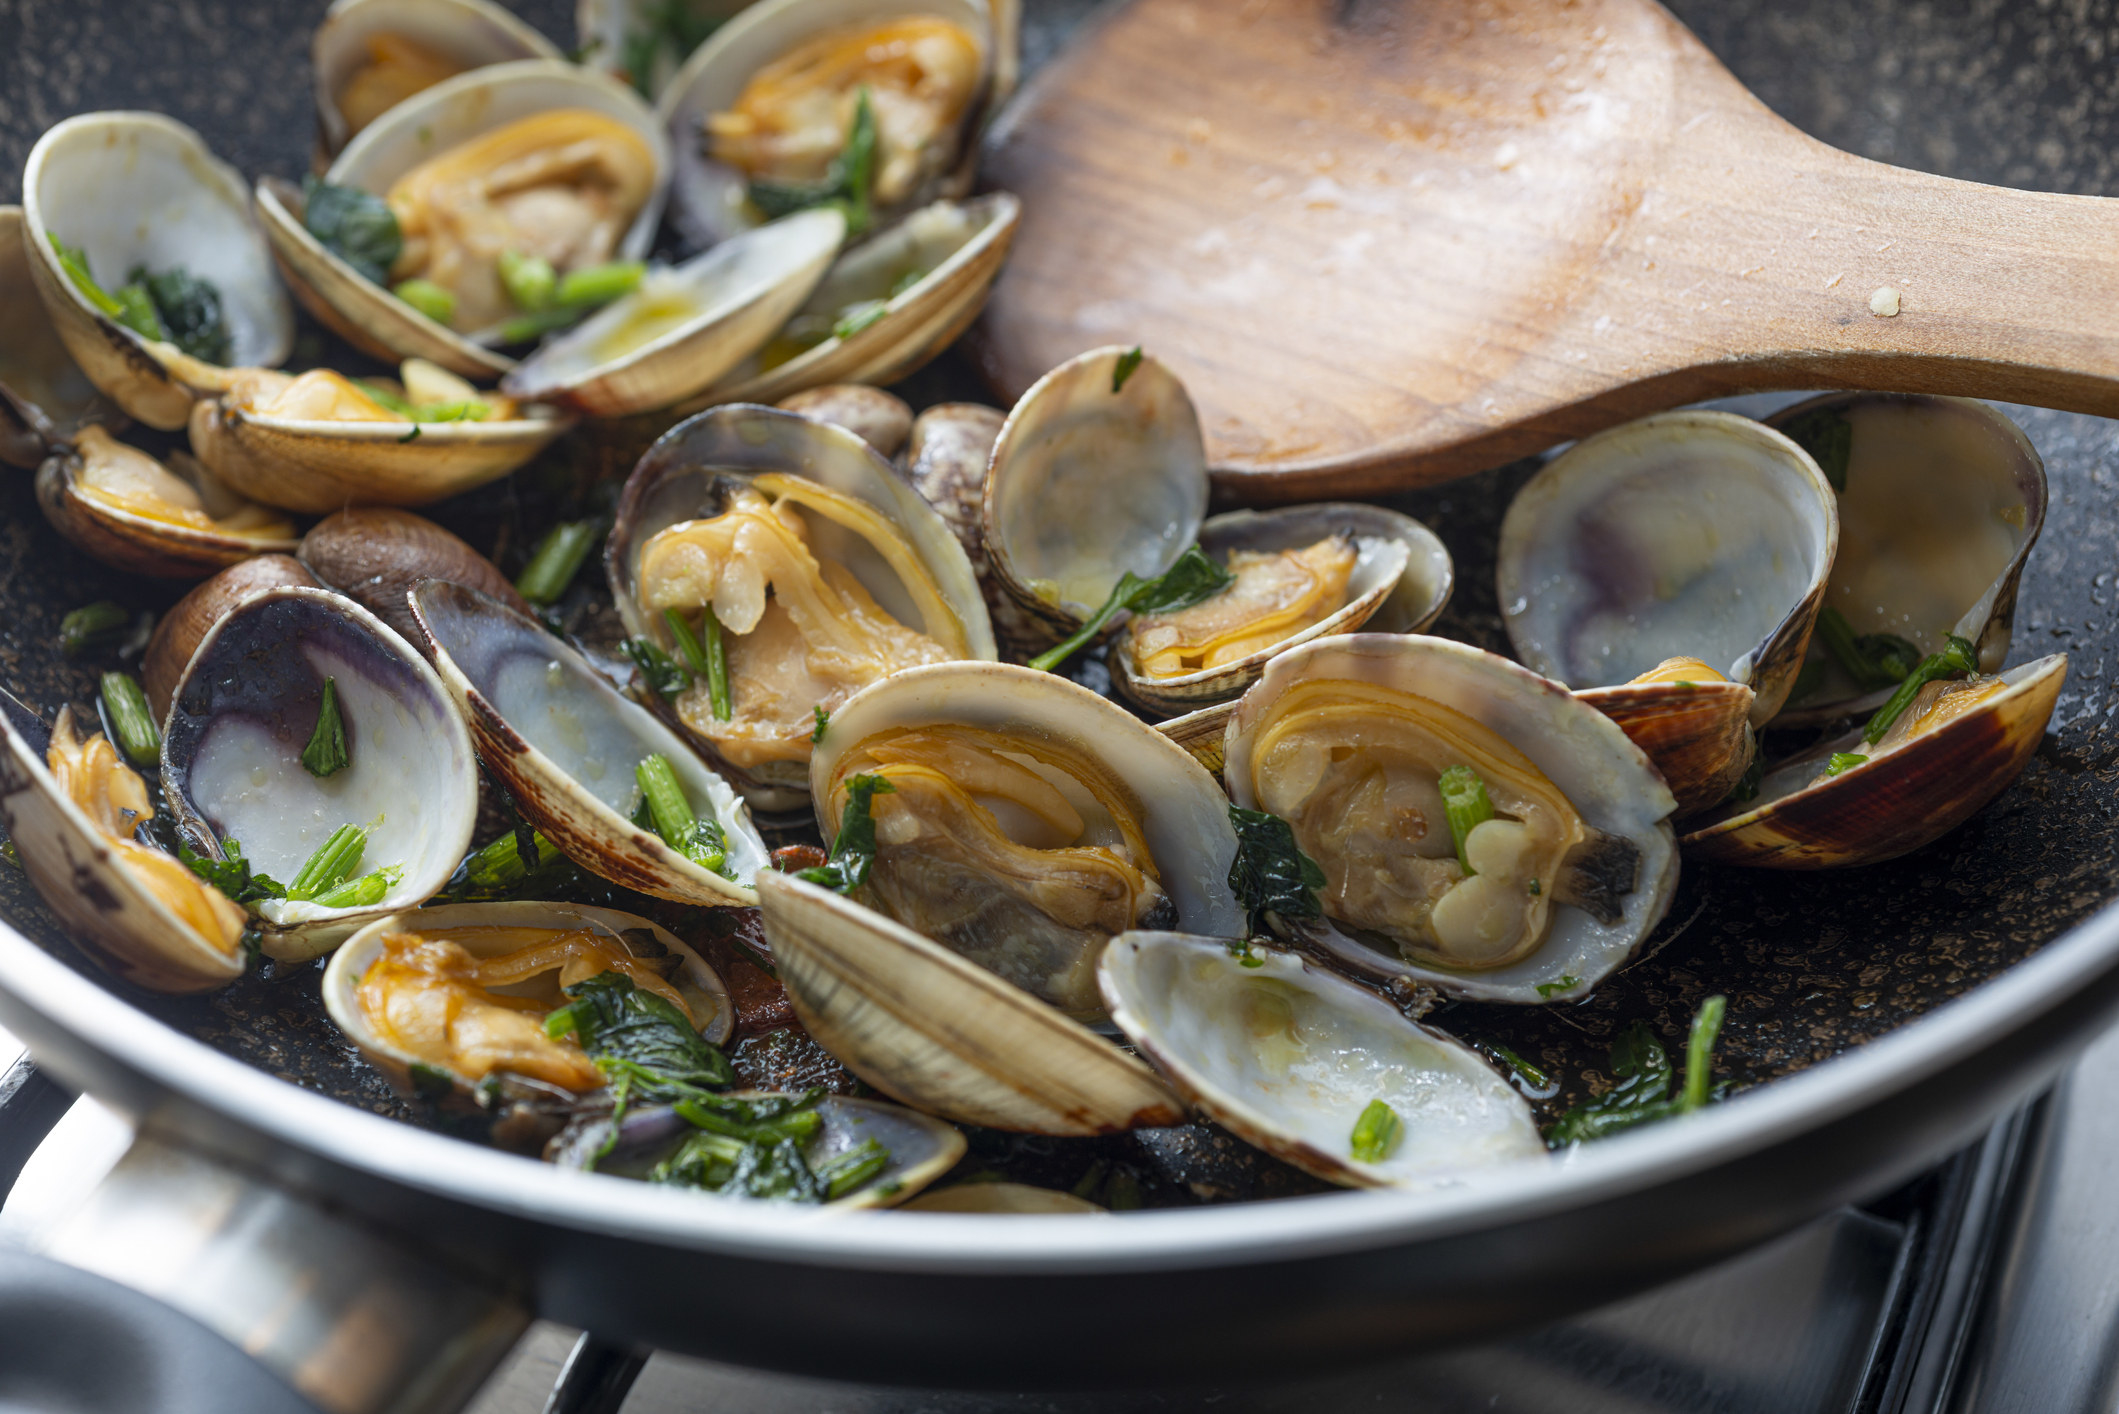 Clams tossed in fresh herbs in a skillet.